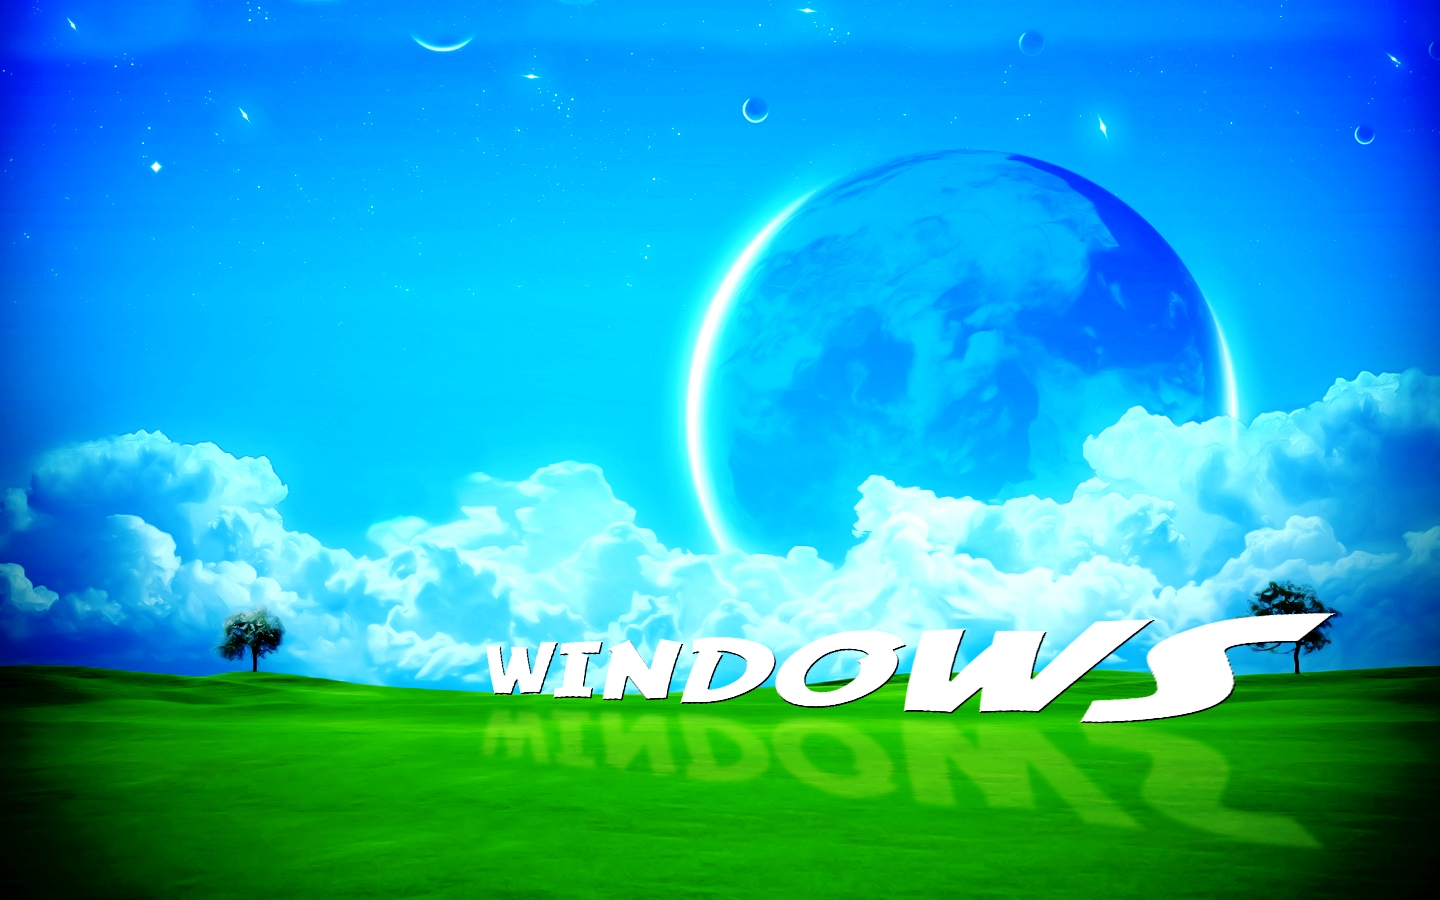 List Windows XP Wallpaper  Free wallpaper download 1440x900